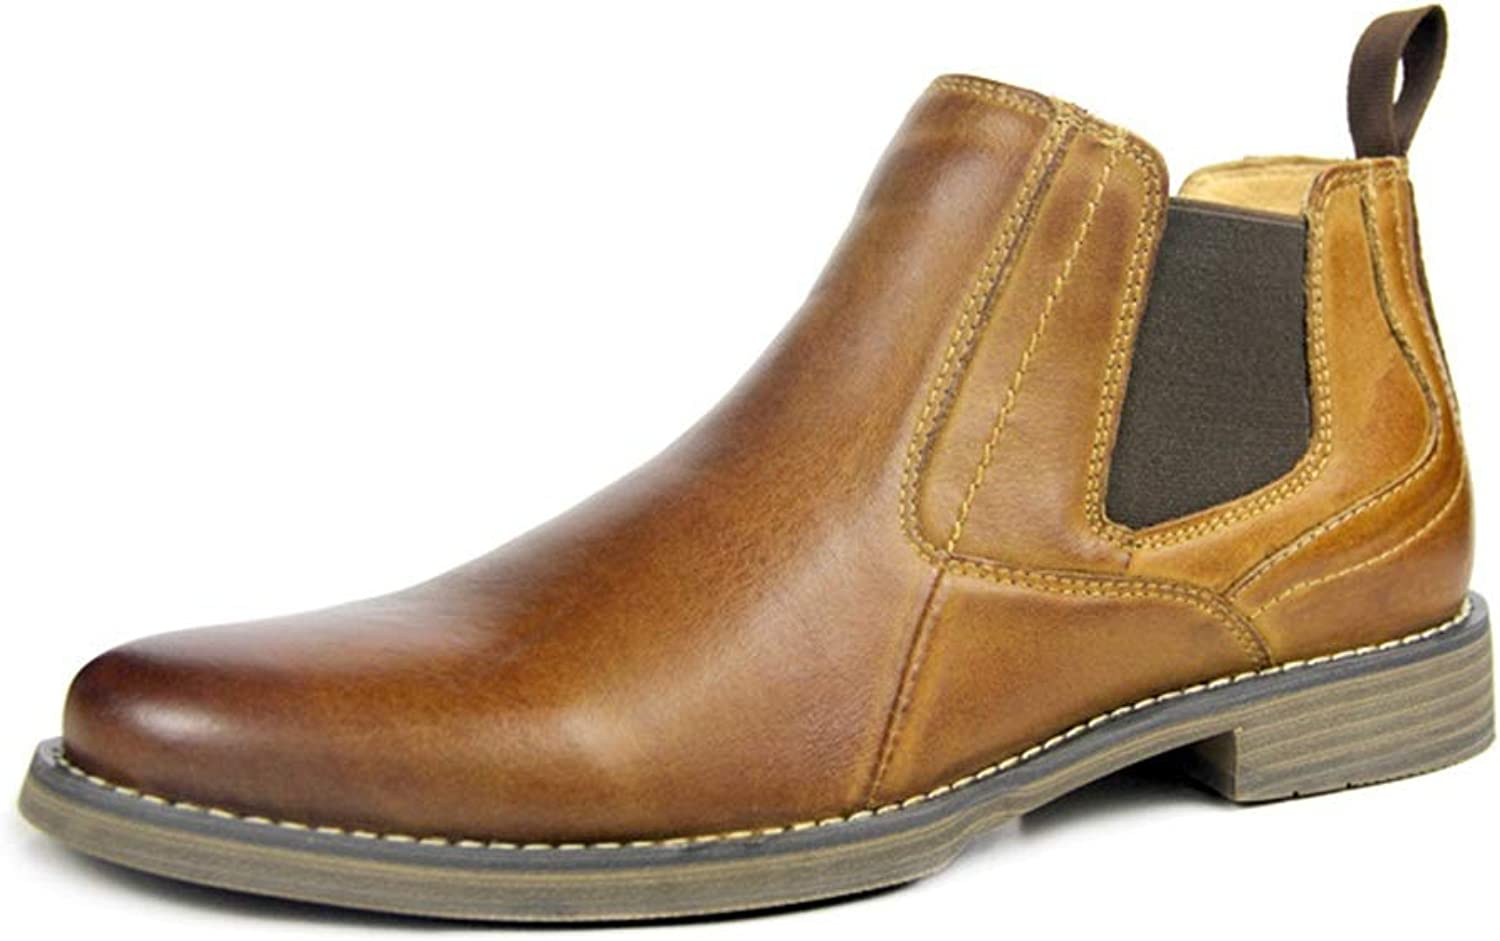 Qiusa Genuine Leather Chelsea Boots for Men Soft Sole Non Slip Durable Comfort Boots (color   Brown, Size   UK 5.5)